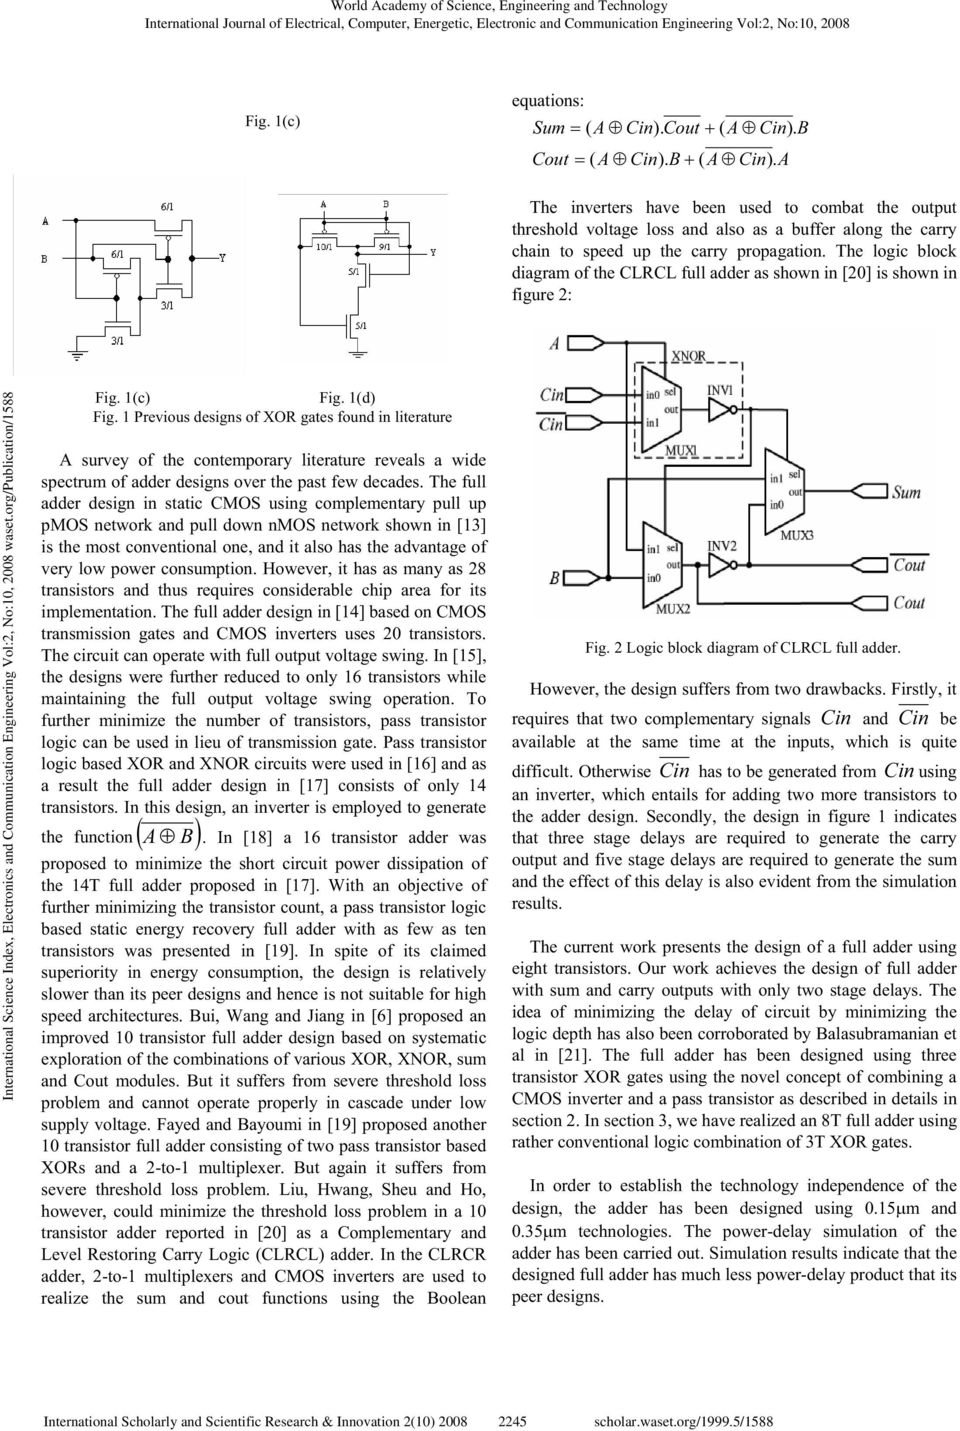 A High Speed 8 Transistor Full Adder Design Using Novel 3 Logic Diagram Xor The Block Of Clrcl As Shown In 20 Is